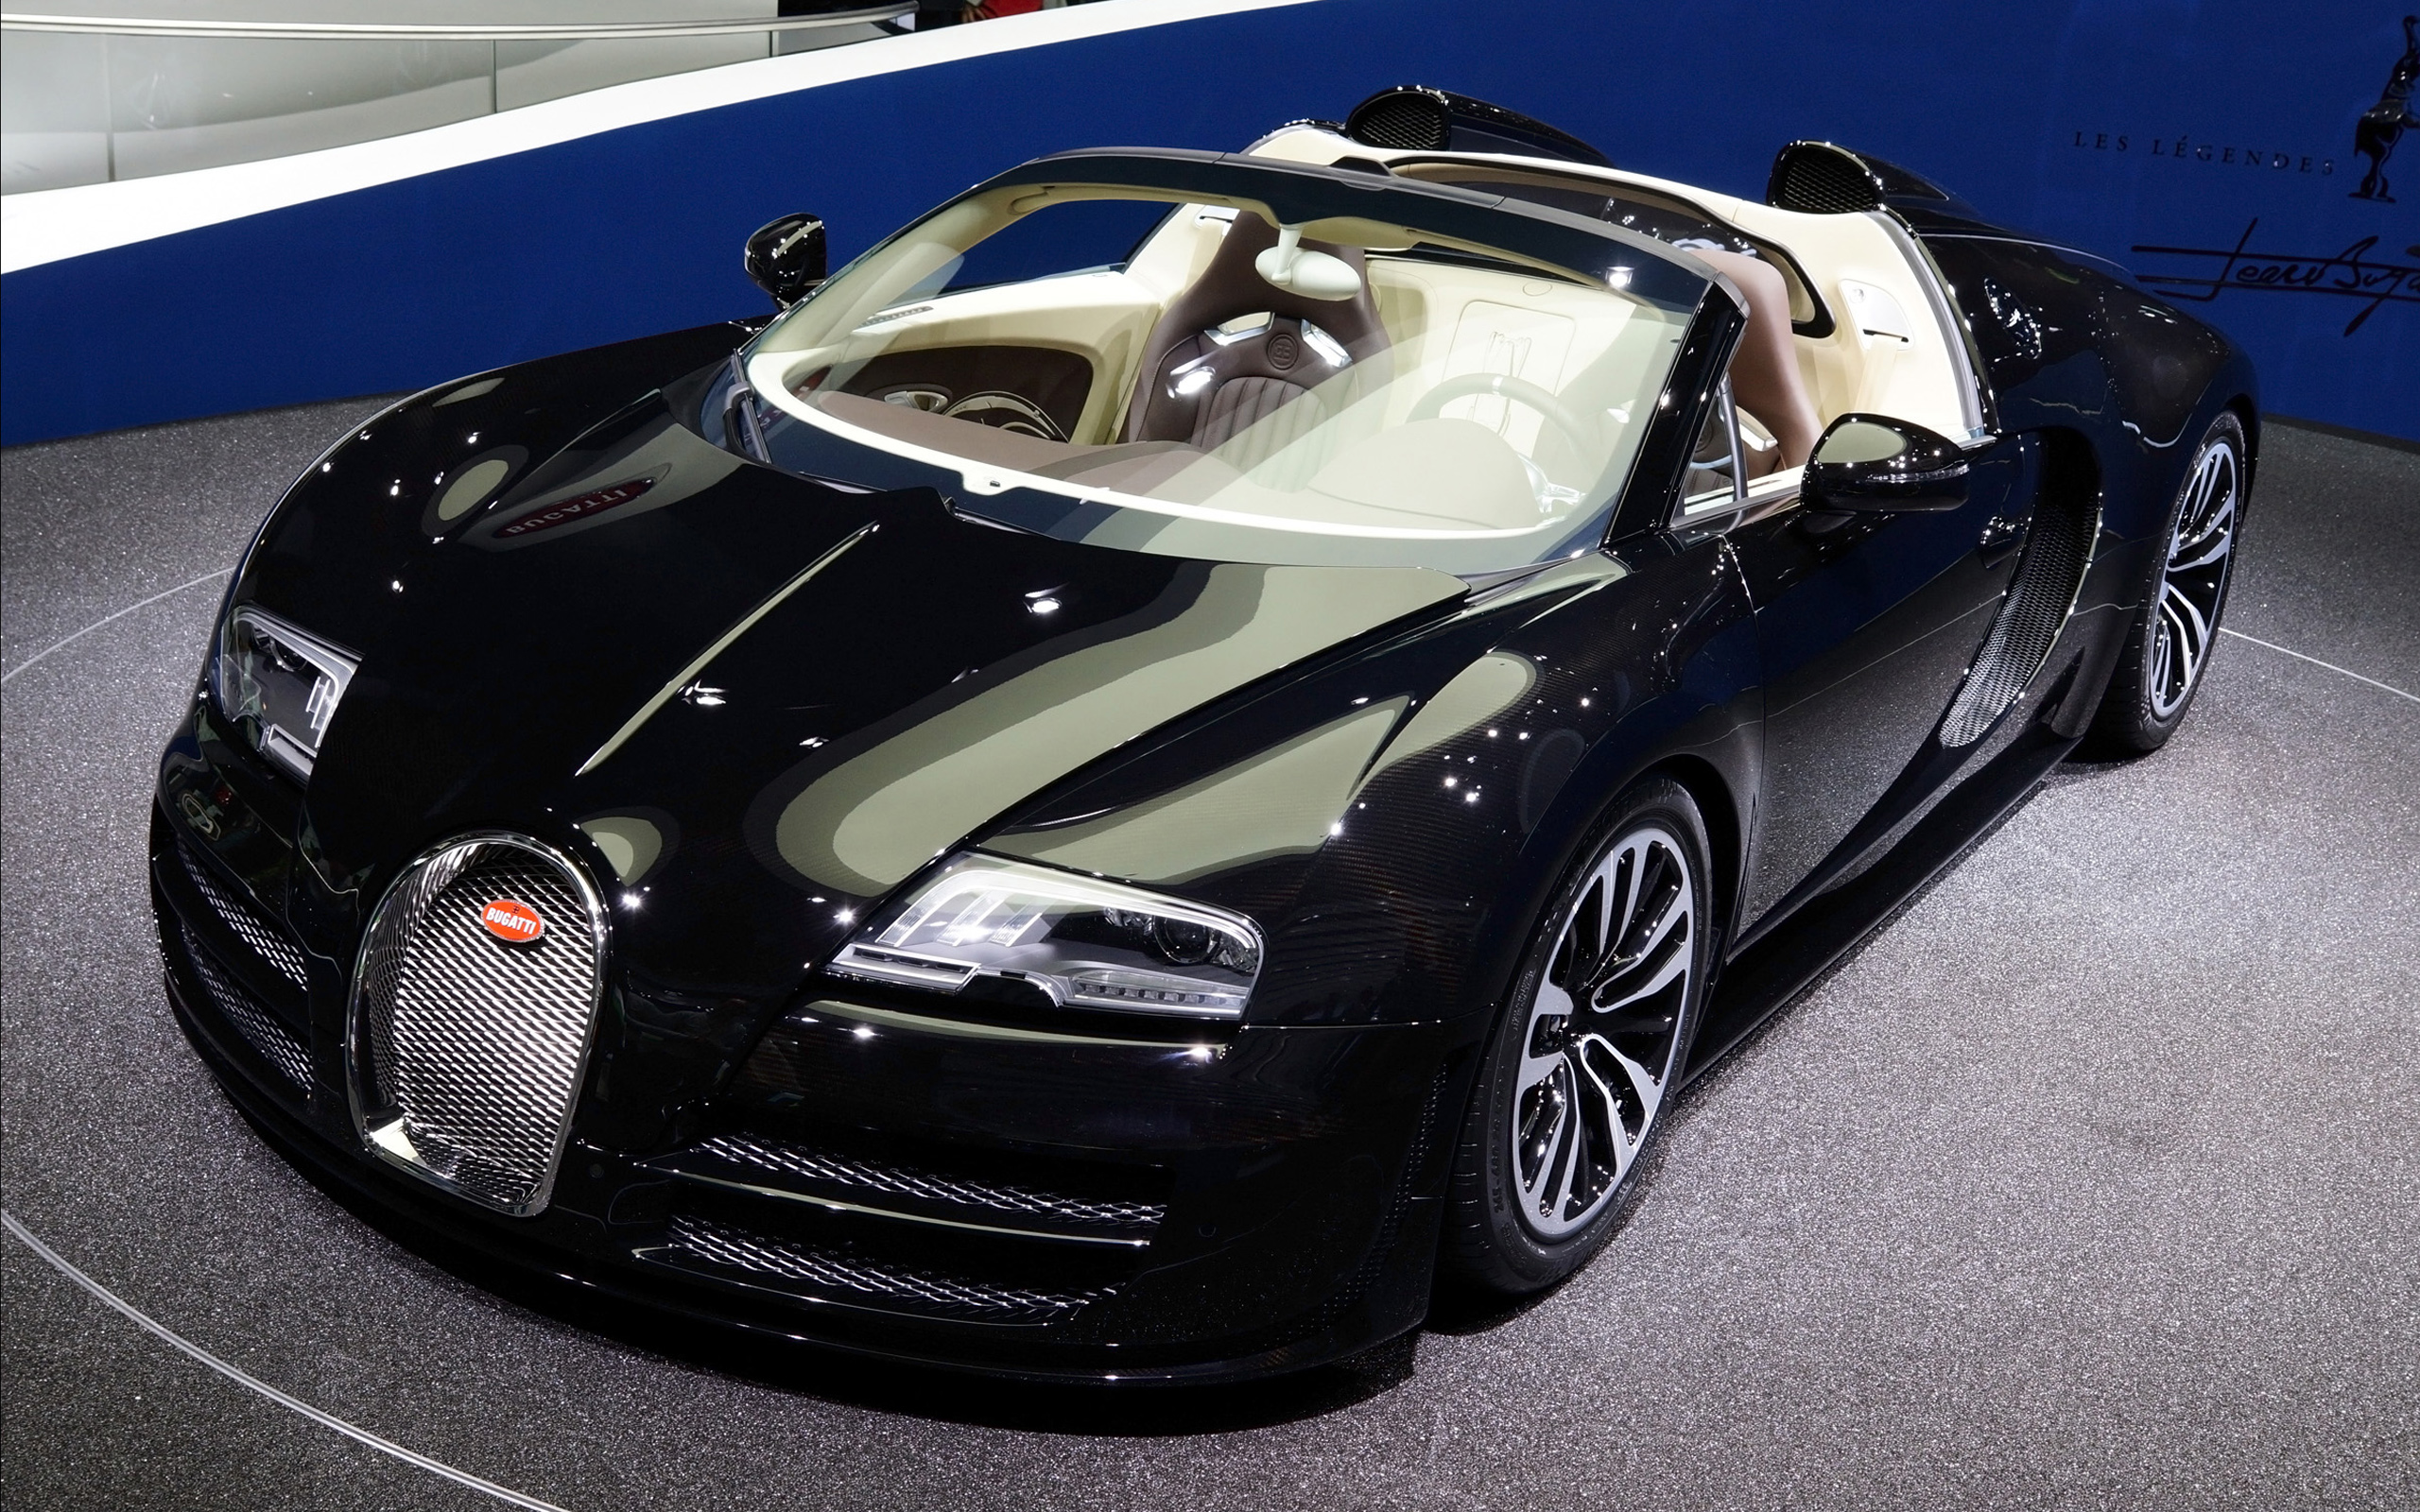 Hd Beautiful Wallpapers Free Download Pictures Images Photos 2013 Bugatti Veyron Engine Diagram Of